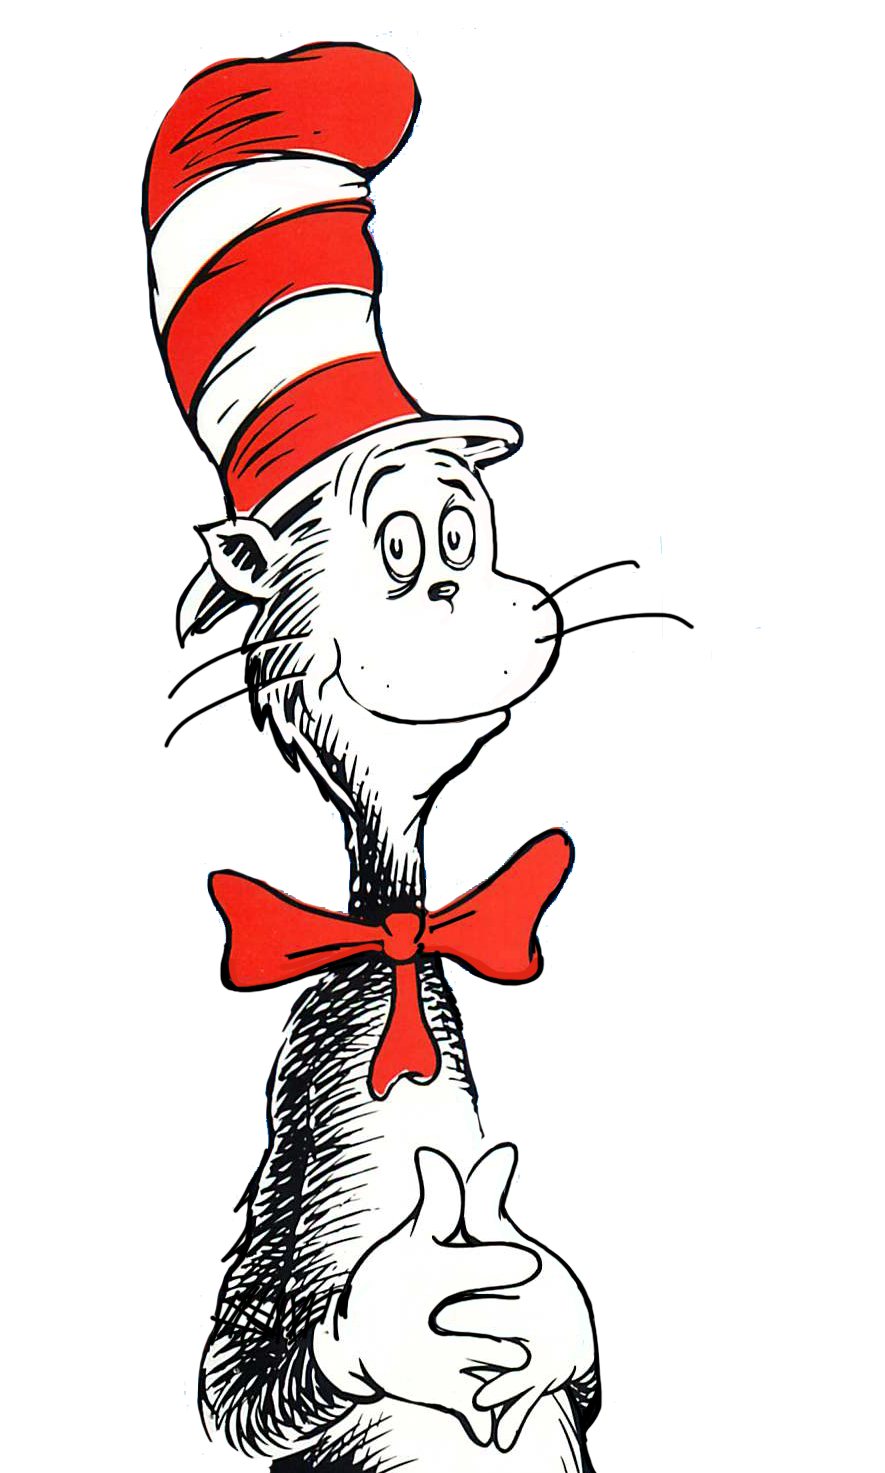 Feed cat clipart png black and white library The Cat in the Hat | VS Battles Wiki | FANDOM powered by Wikia png black and white library